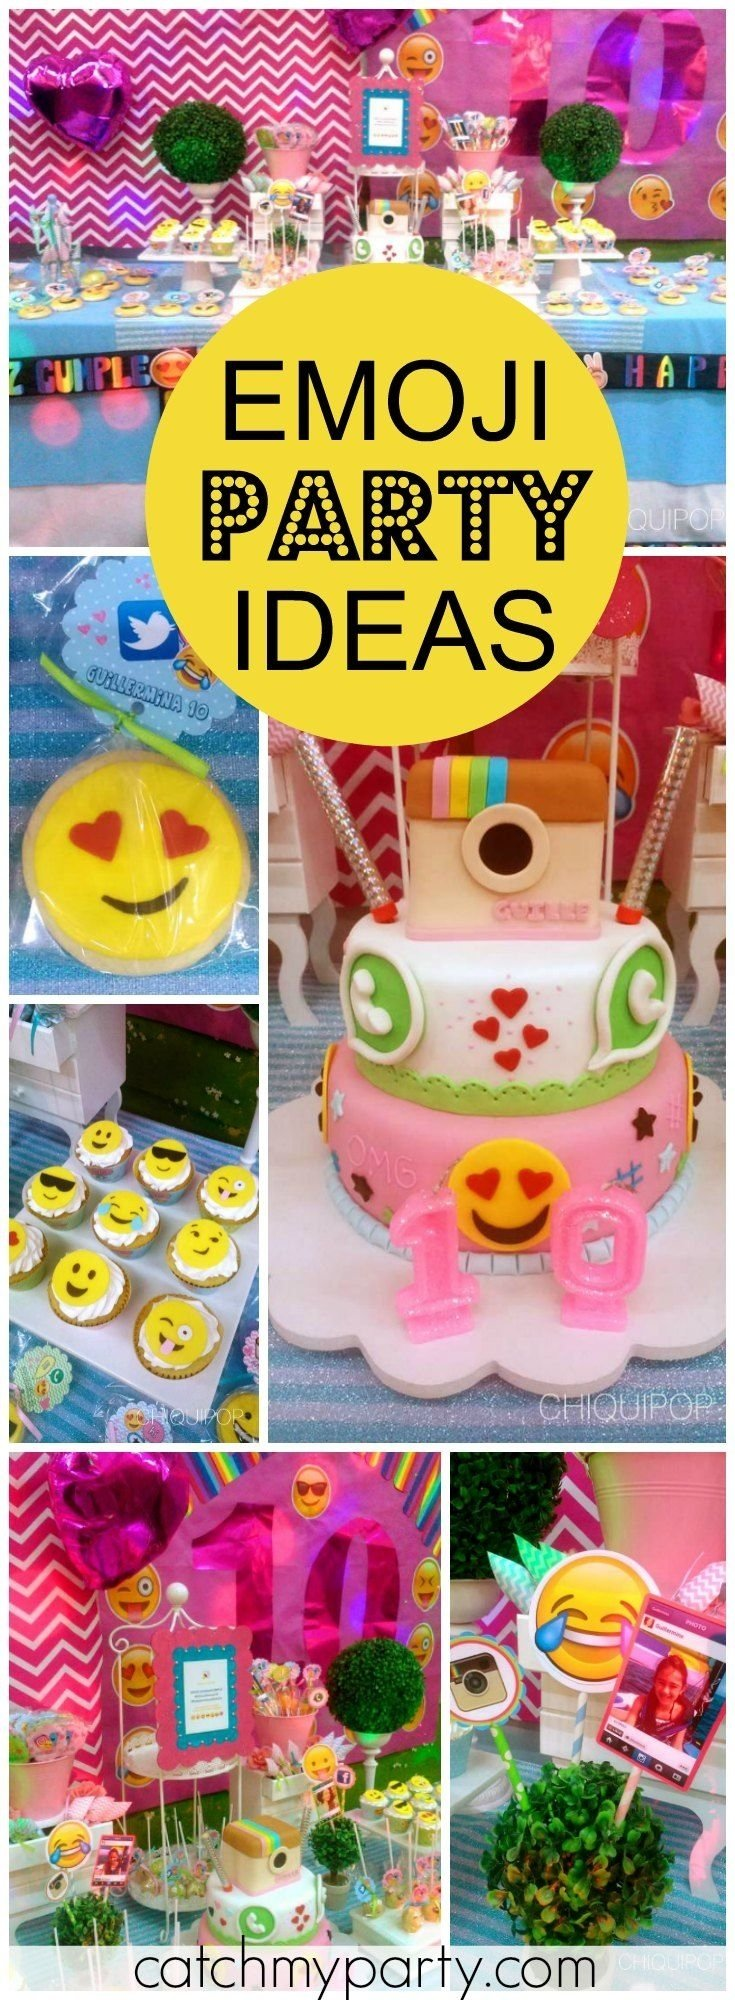 10 Fabulous Fun Party Ideas For Teens insta face emoji birthday a fun holiday for guillerminas 10th 4 2021